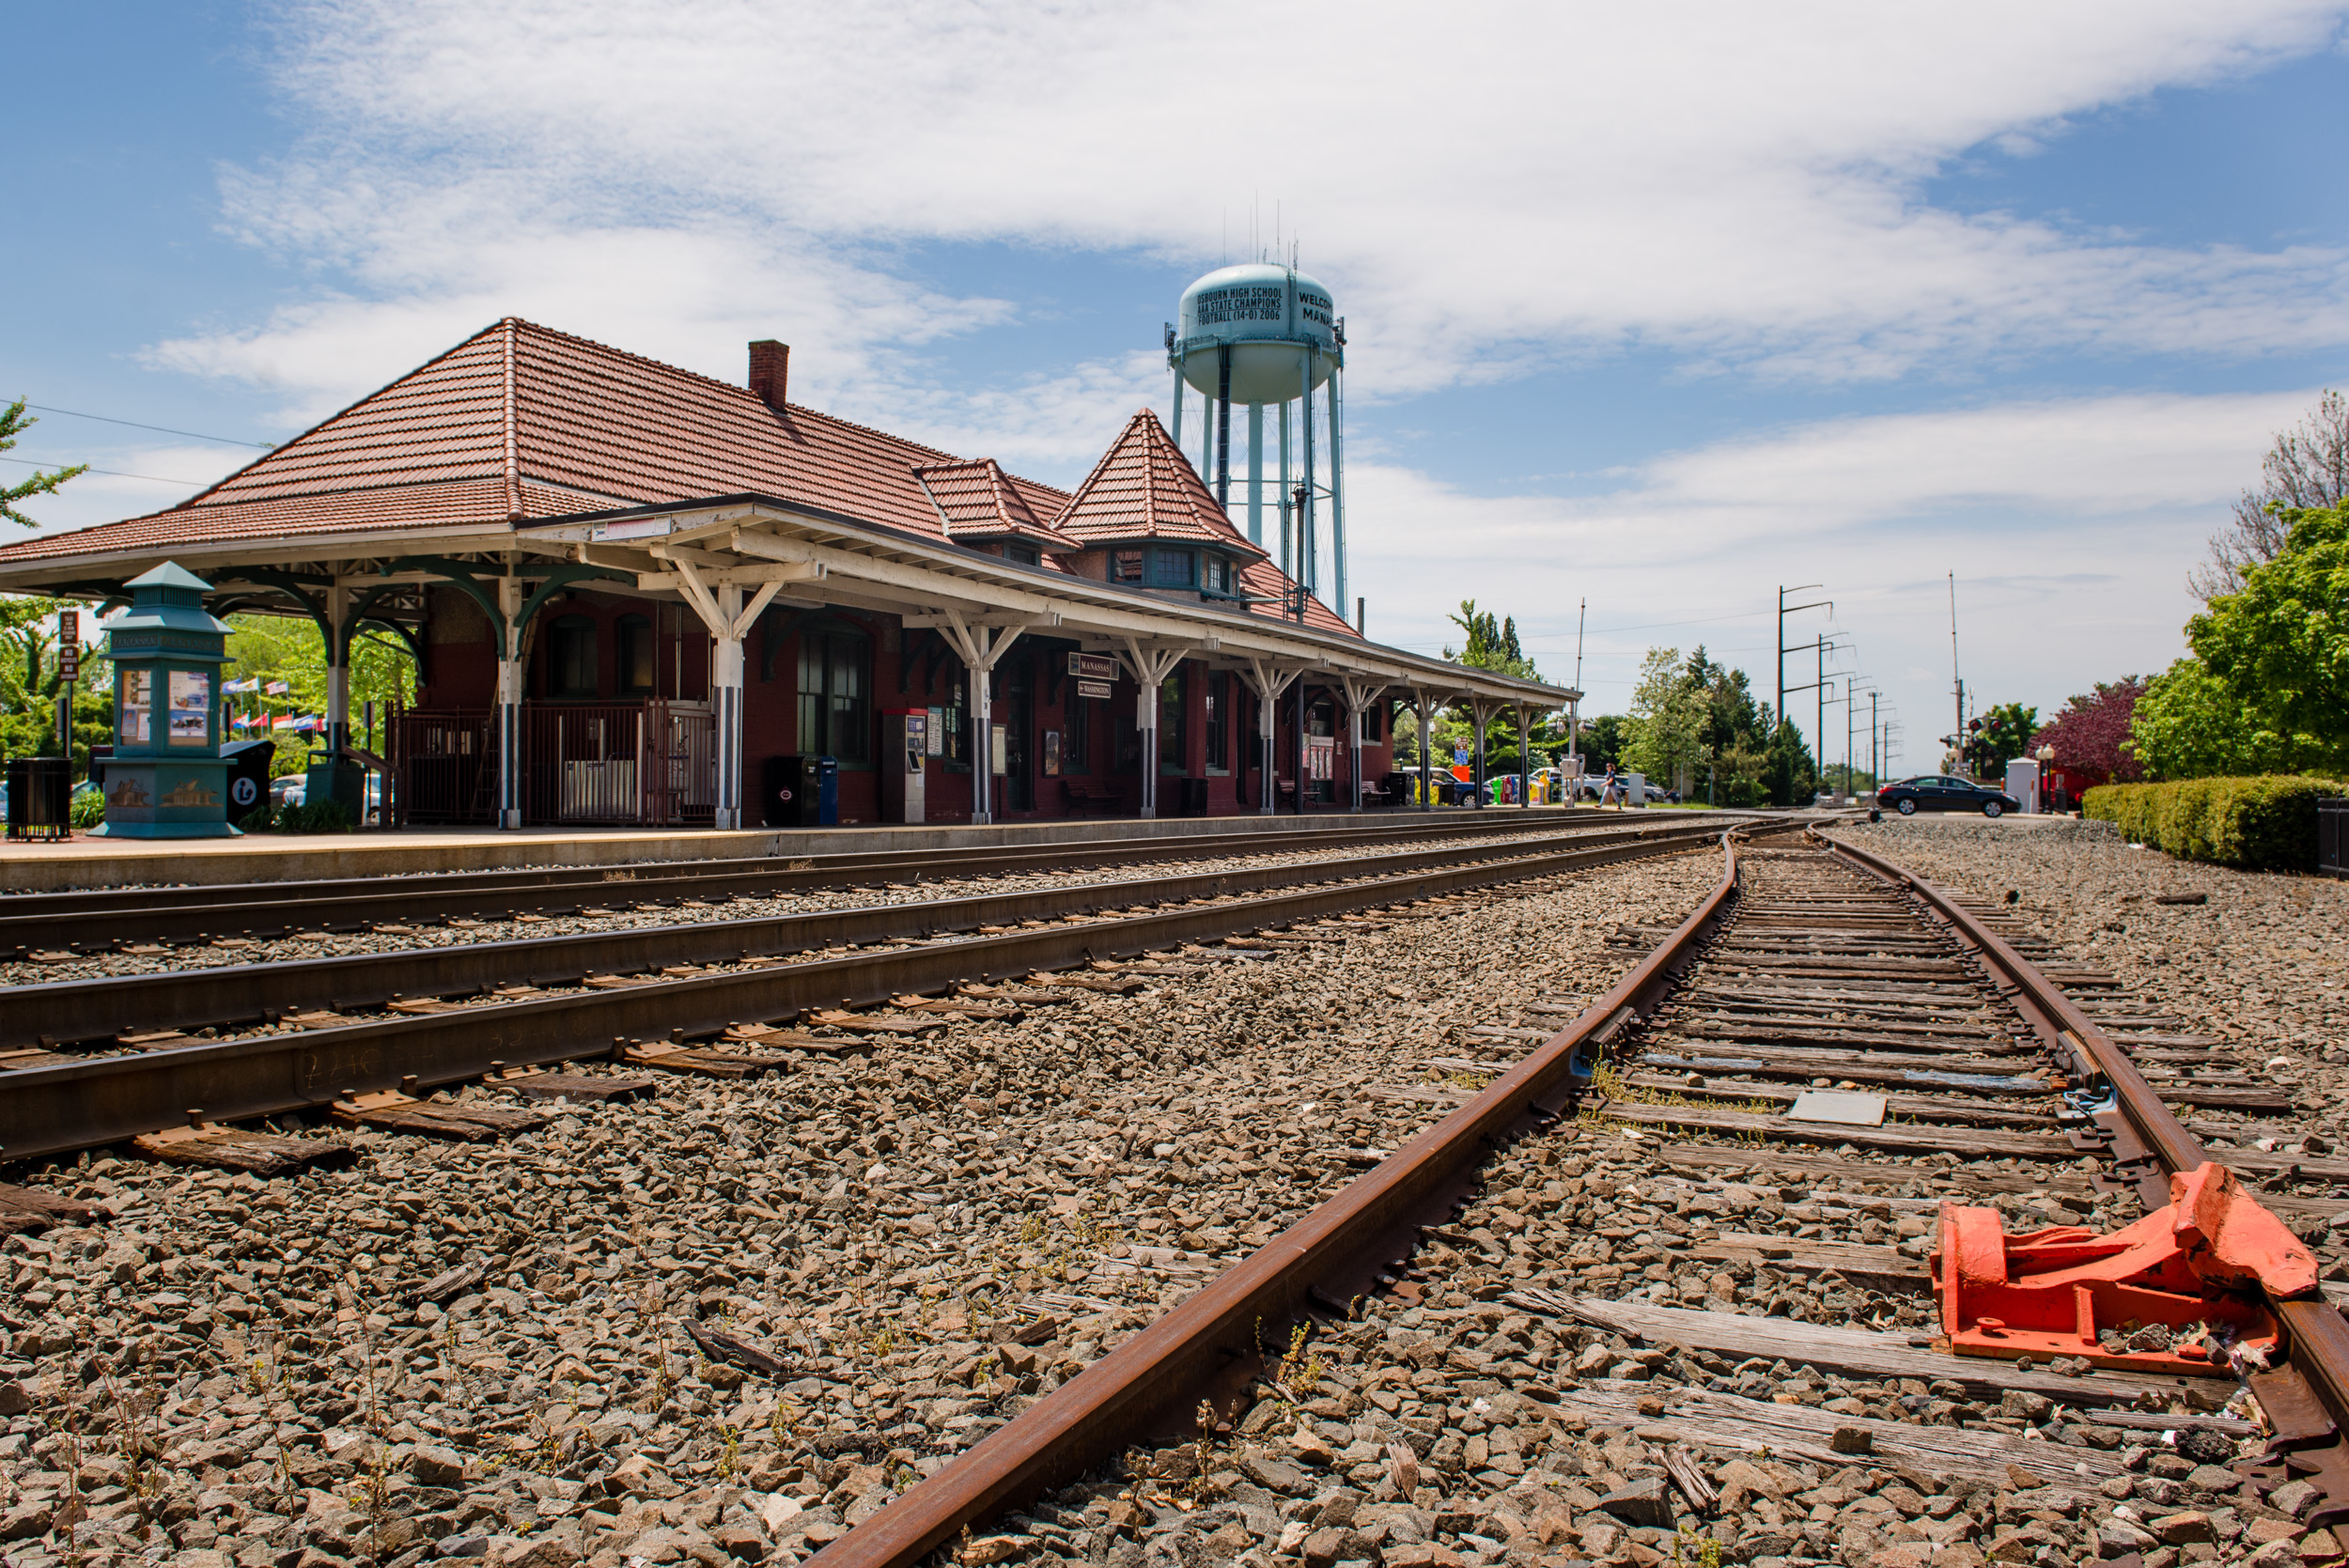 he Historic Old Town Manassas train station.